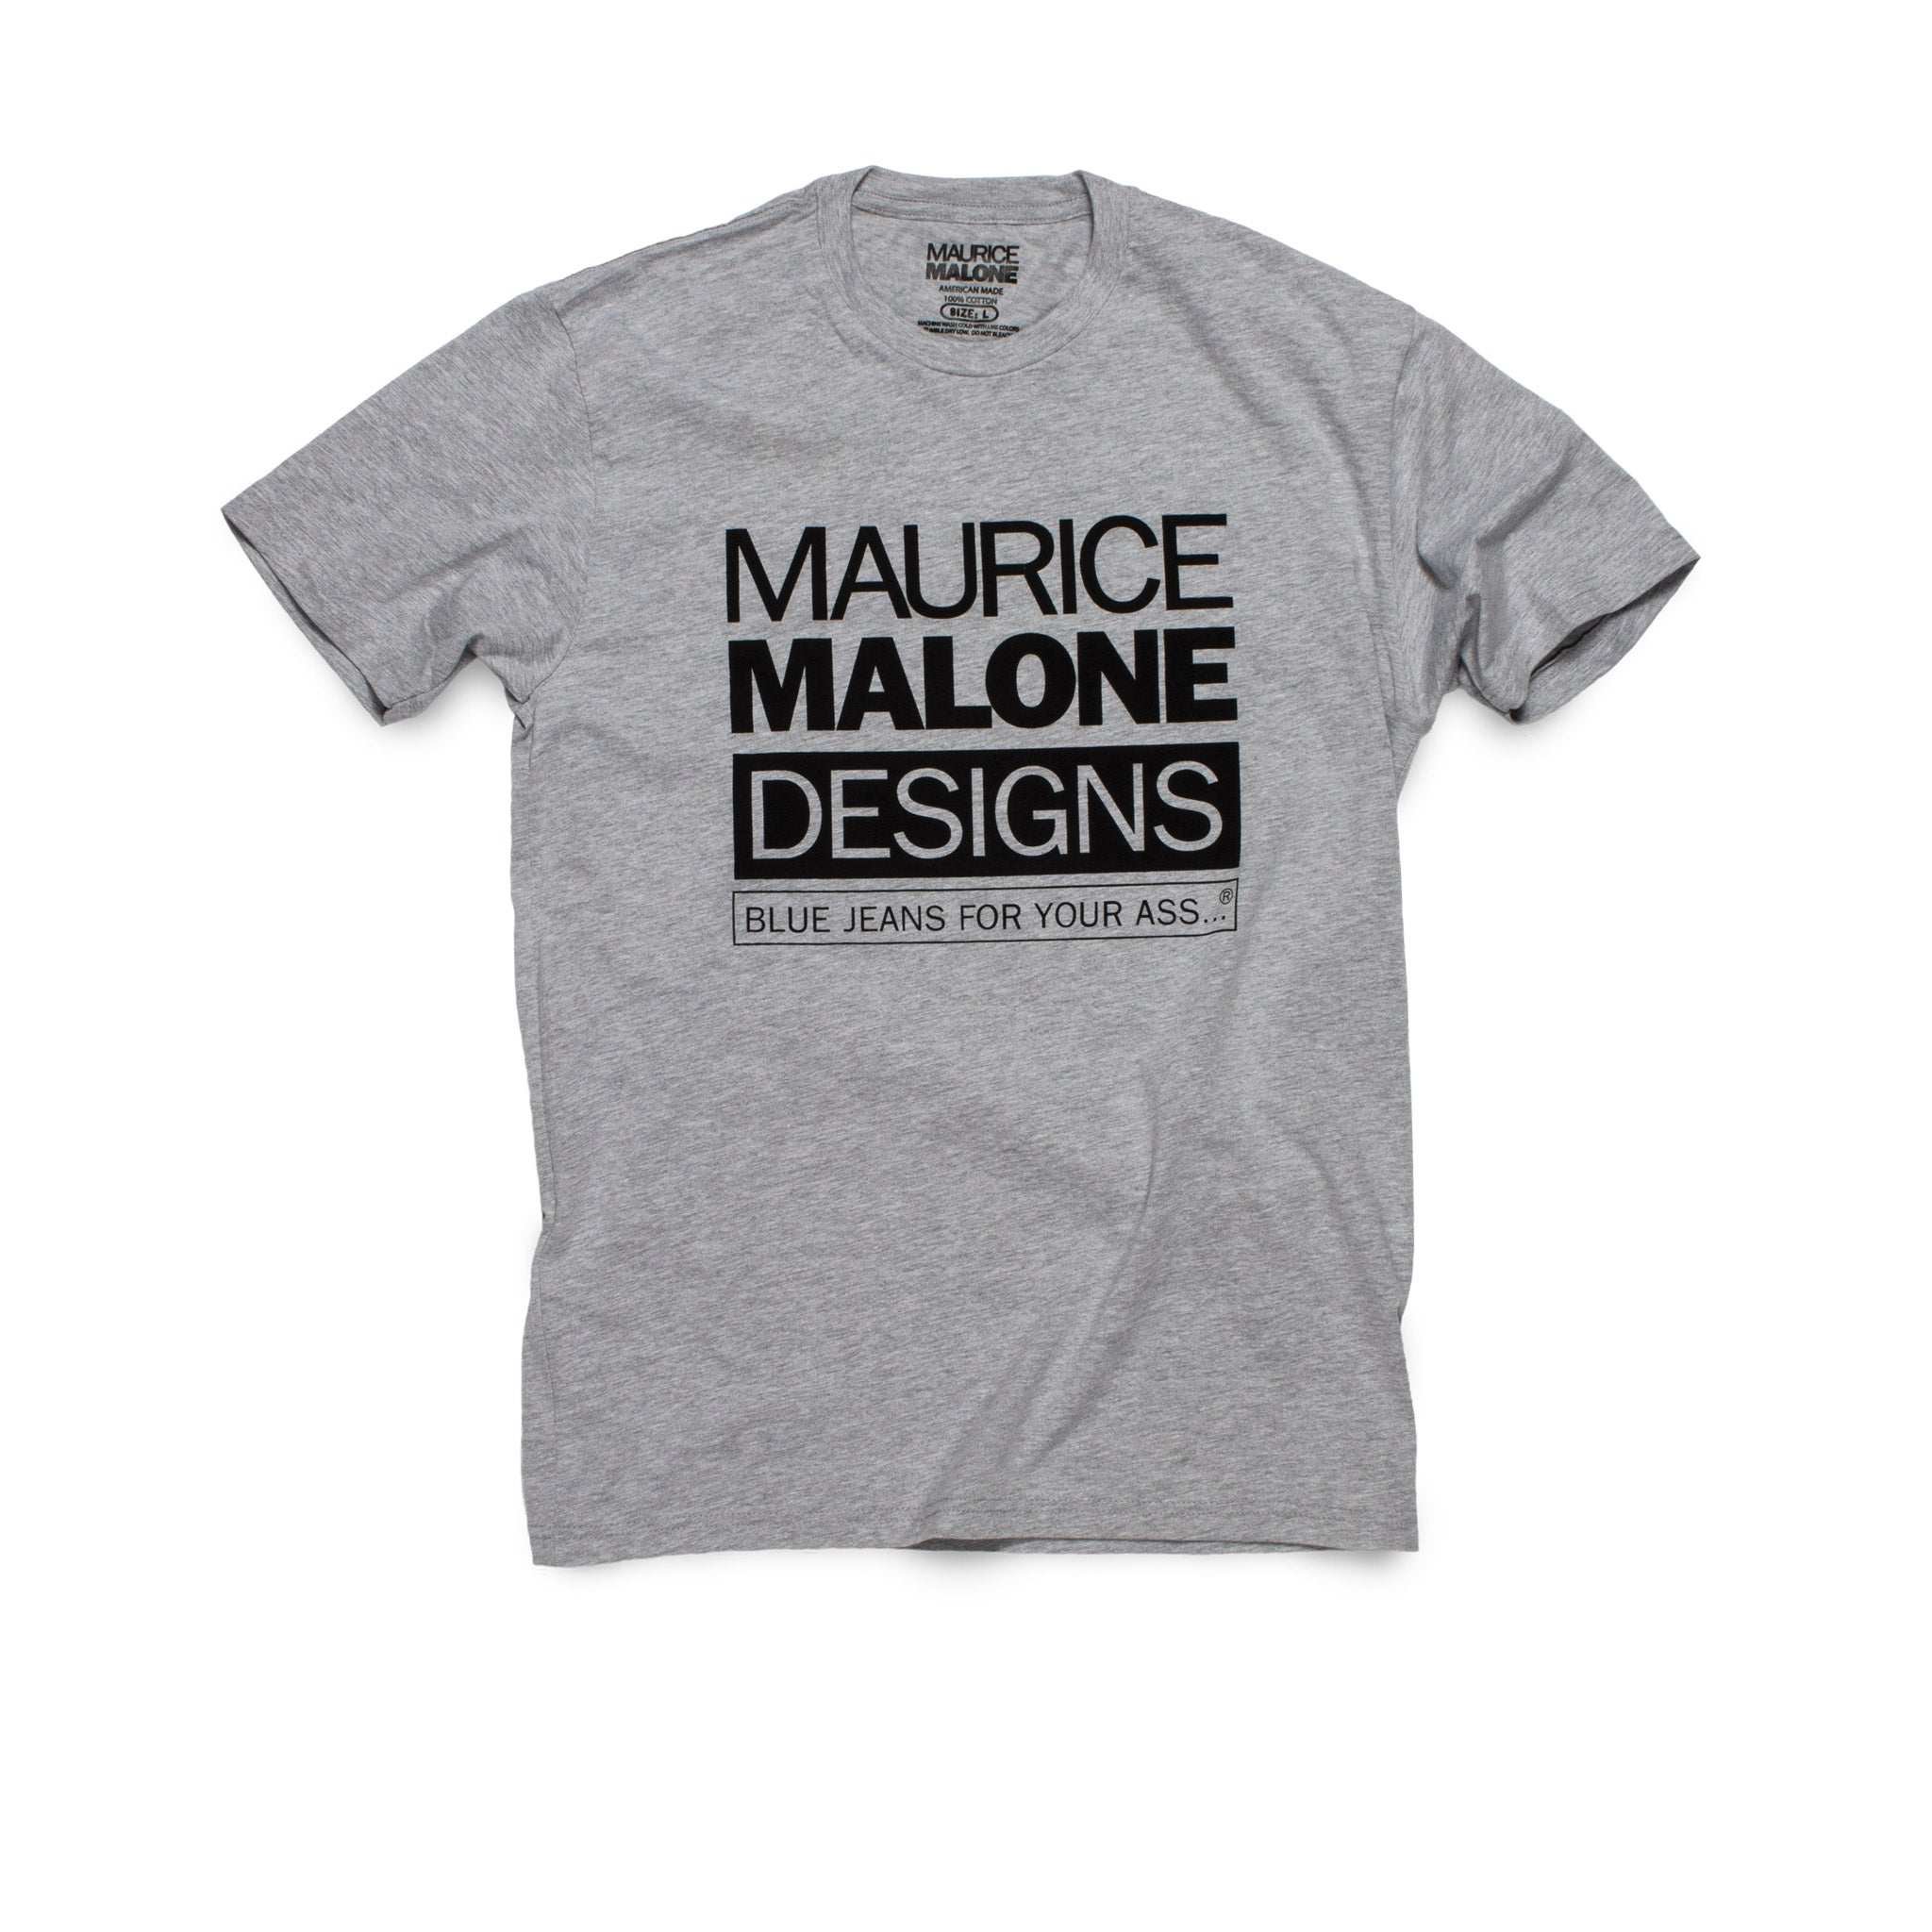 Maurice Malone t-shirt heather gray iconic streetwear logo